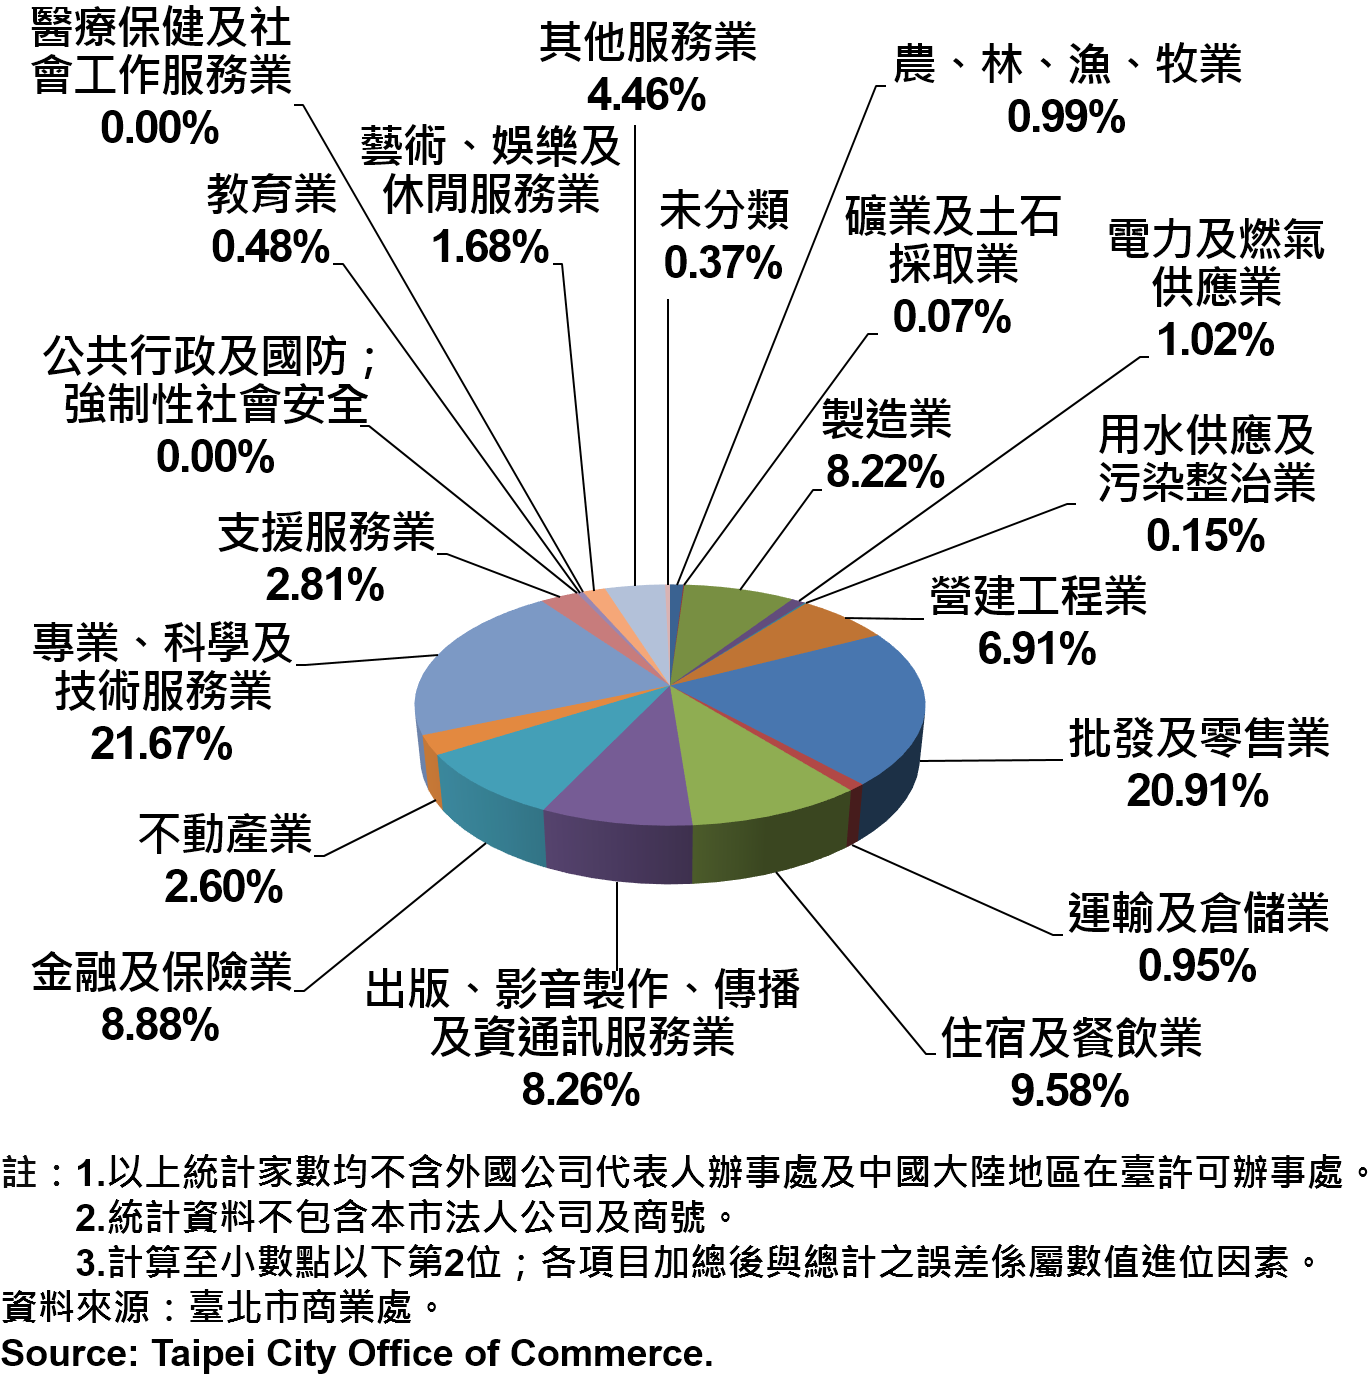 臺北市新創公司行號之業別分布情形—依新增家數—2018Q3 Newly Registered Companies in Taipei City by Industry- Number of Incorporation—2018Q3